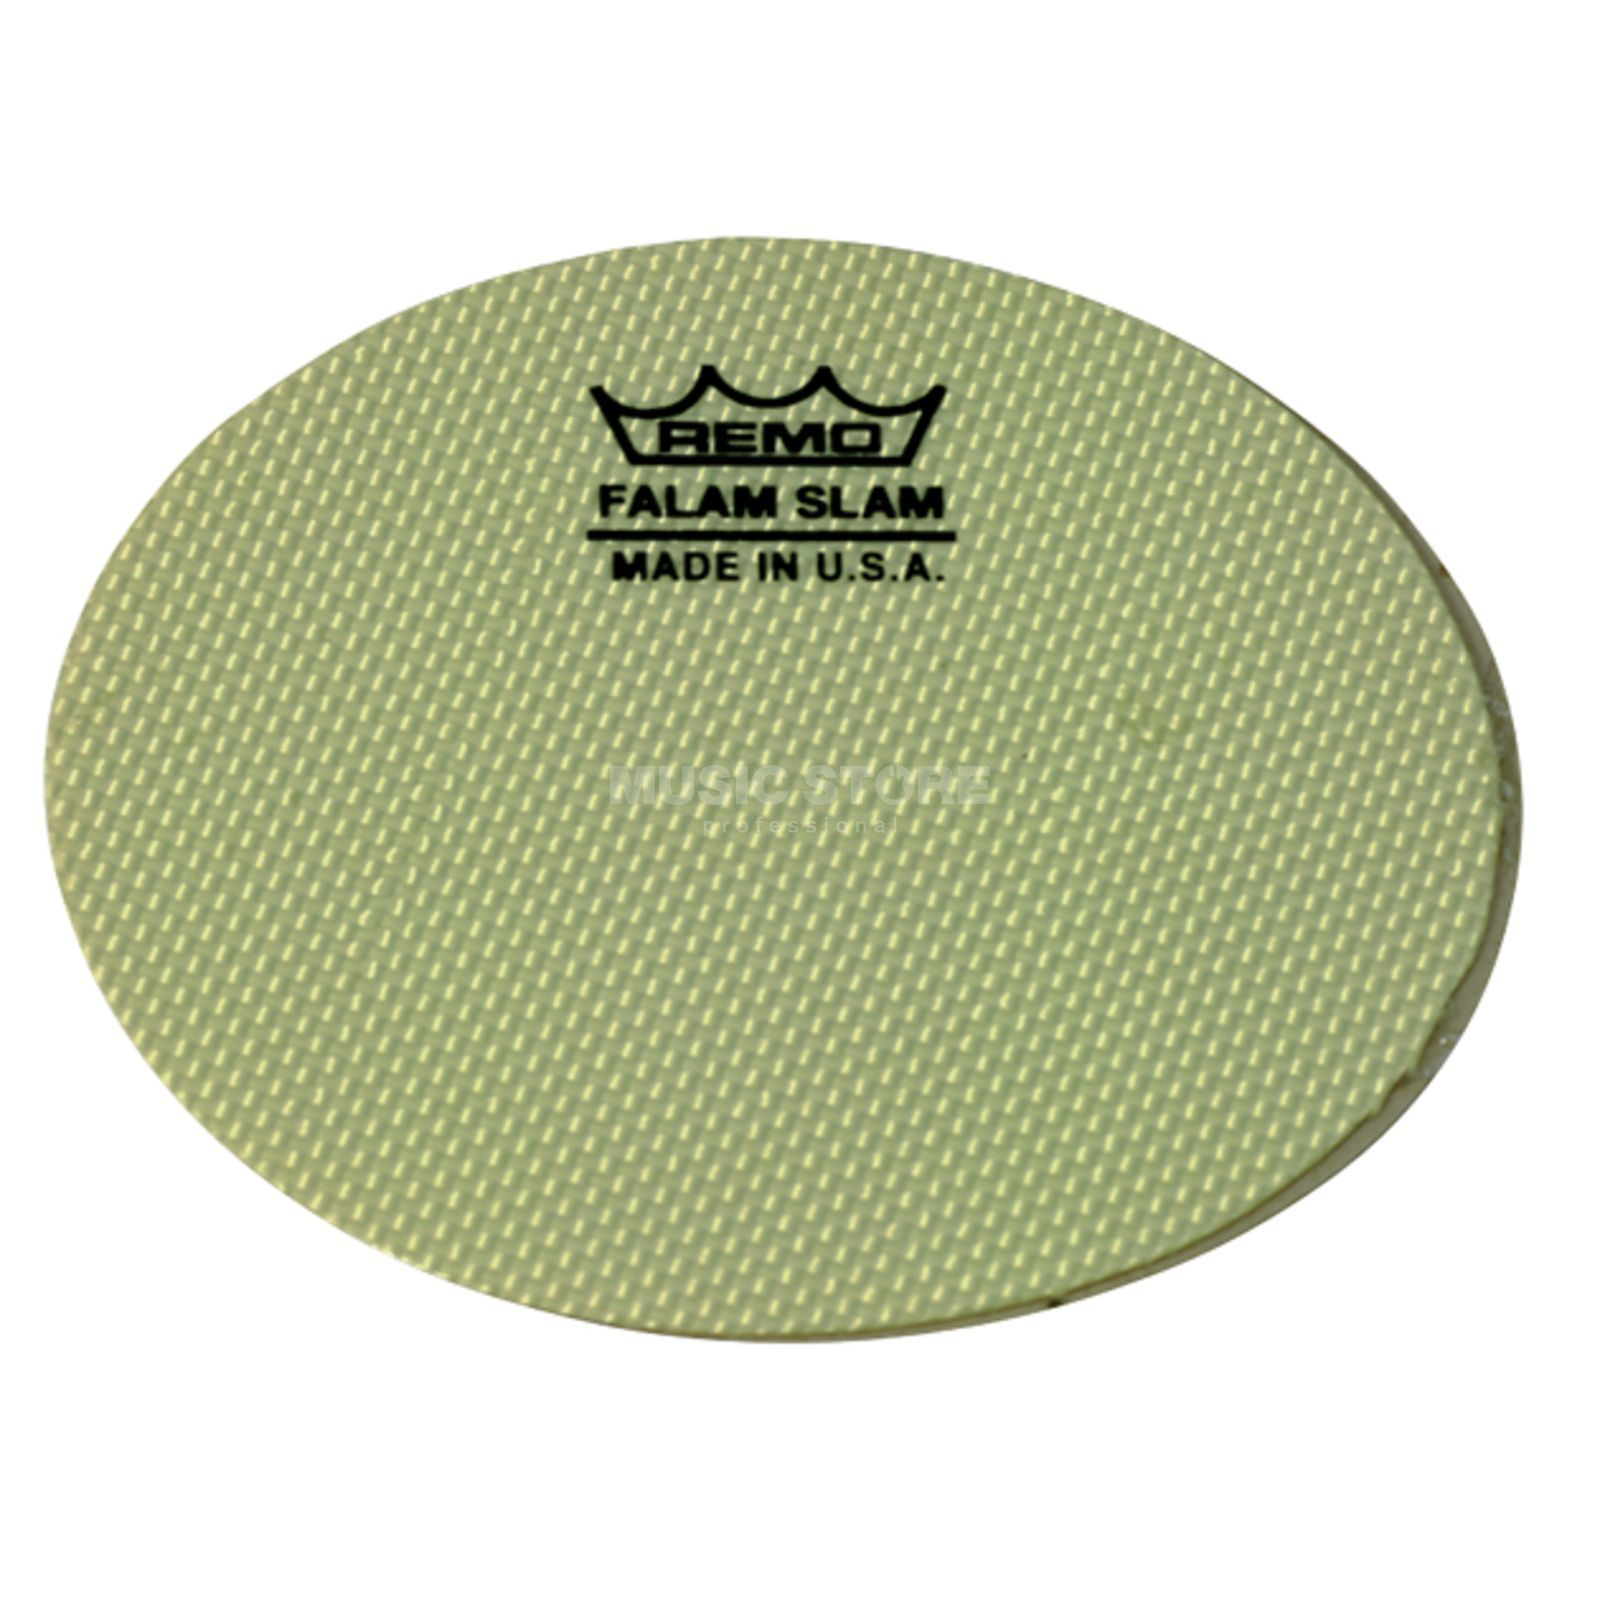 "Remo Falam Slam Pad KS-0004-PH, 4"", Single BassDrum Pad Product Image"